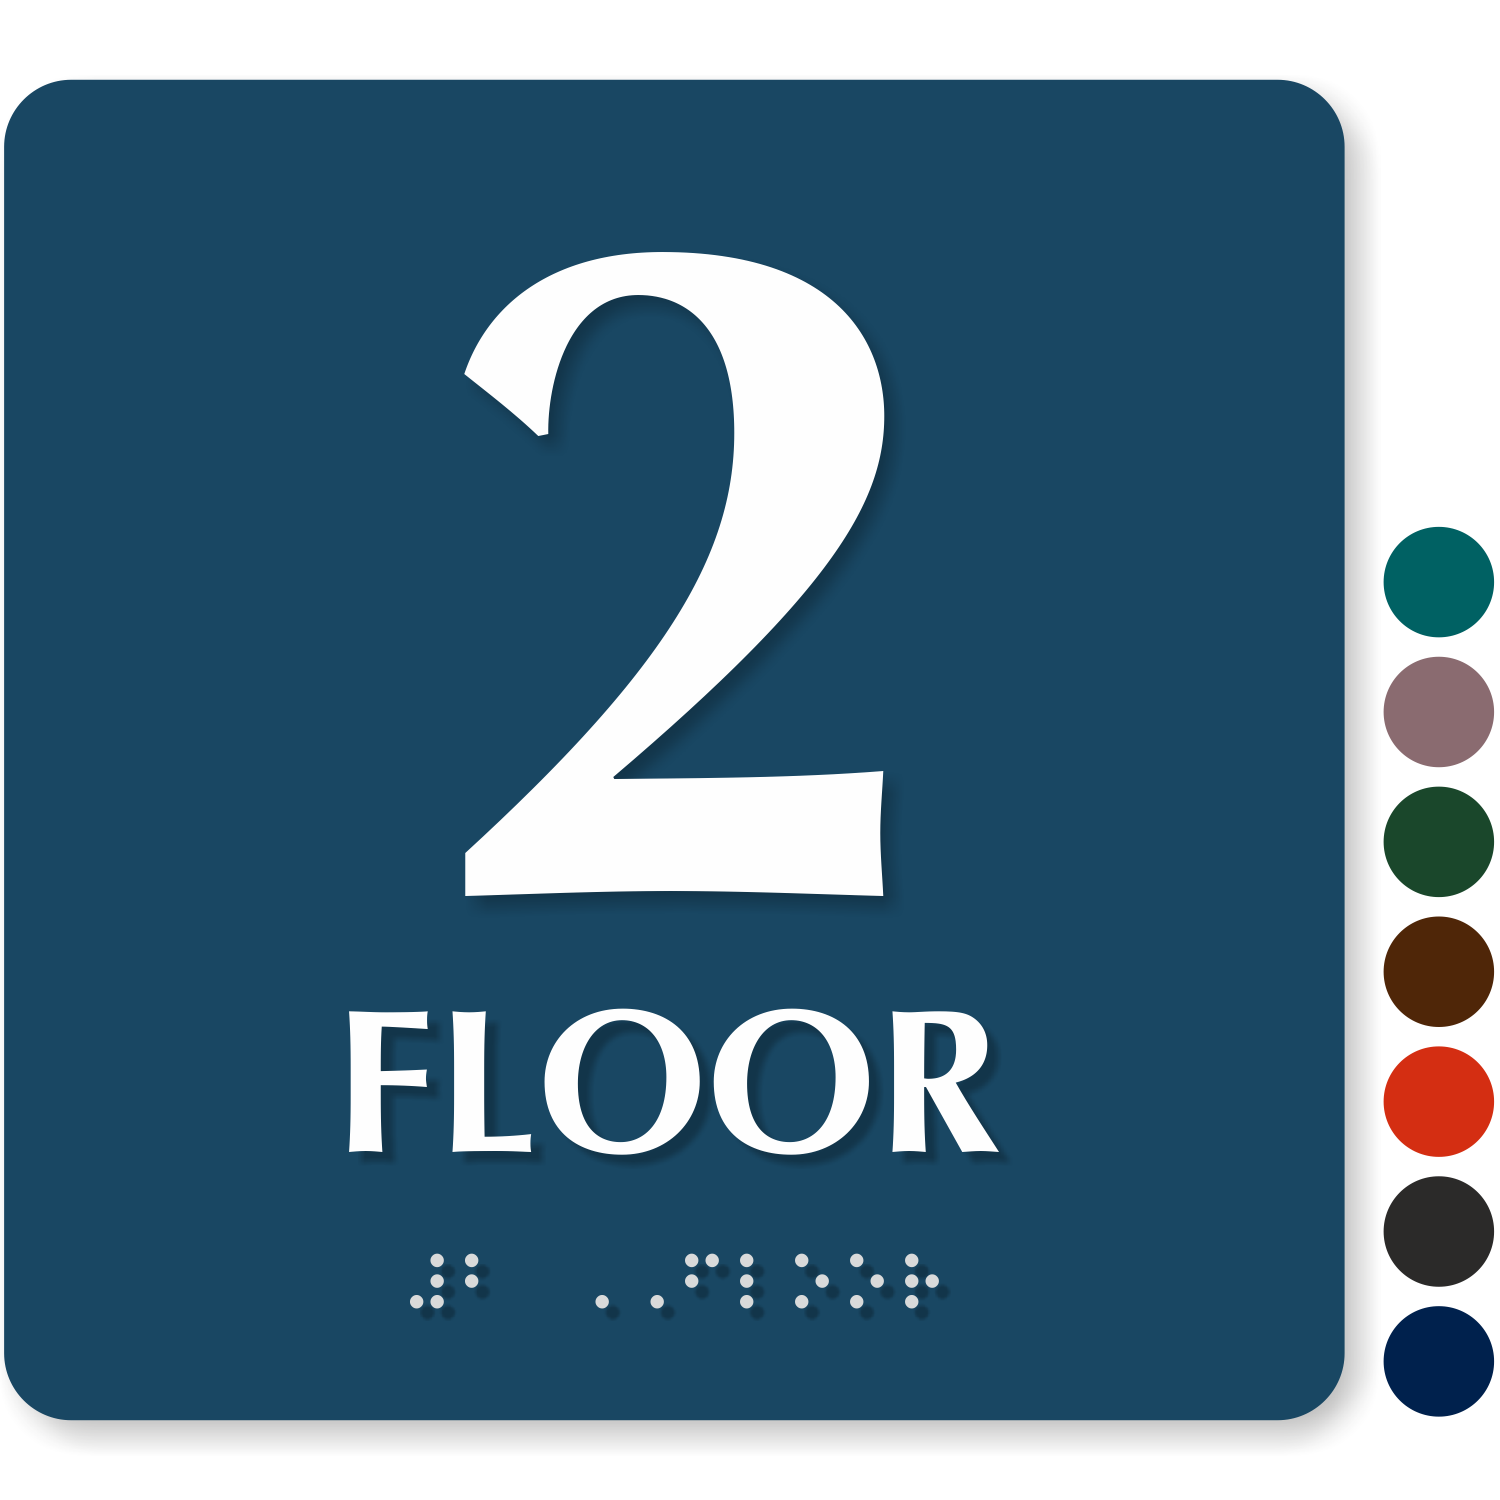 Floor number signs roof access re entry floor number for Floor banner